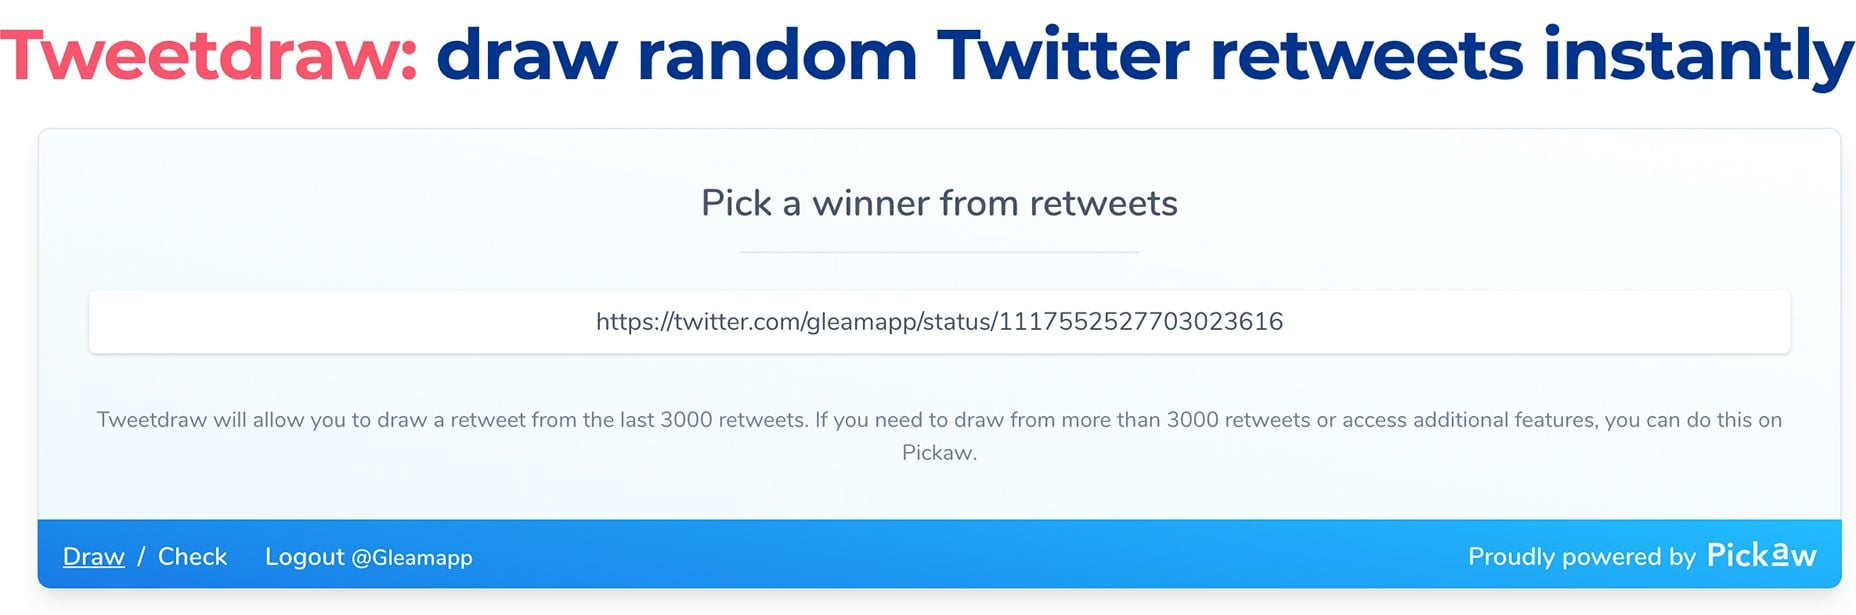 tweetdraw-retweet-picker-1